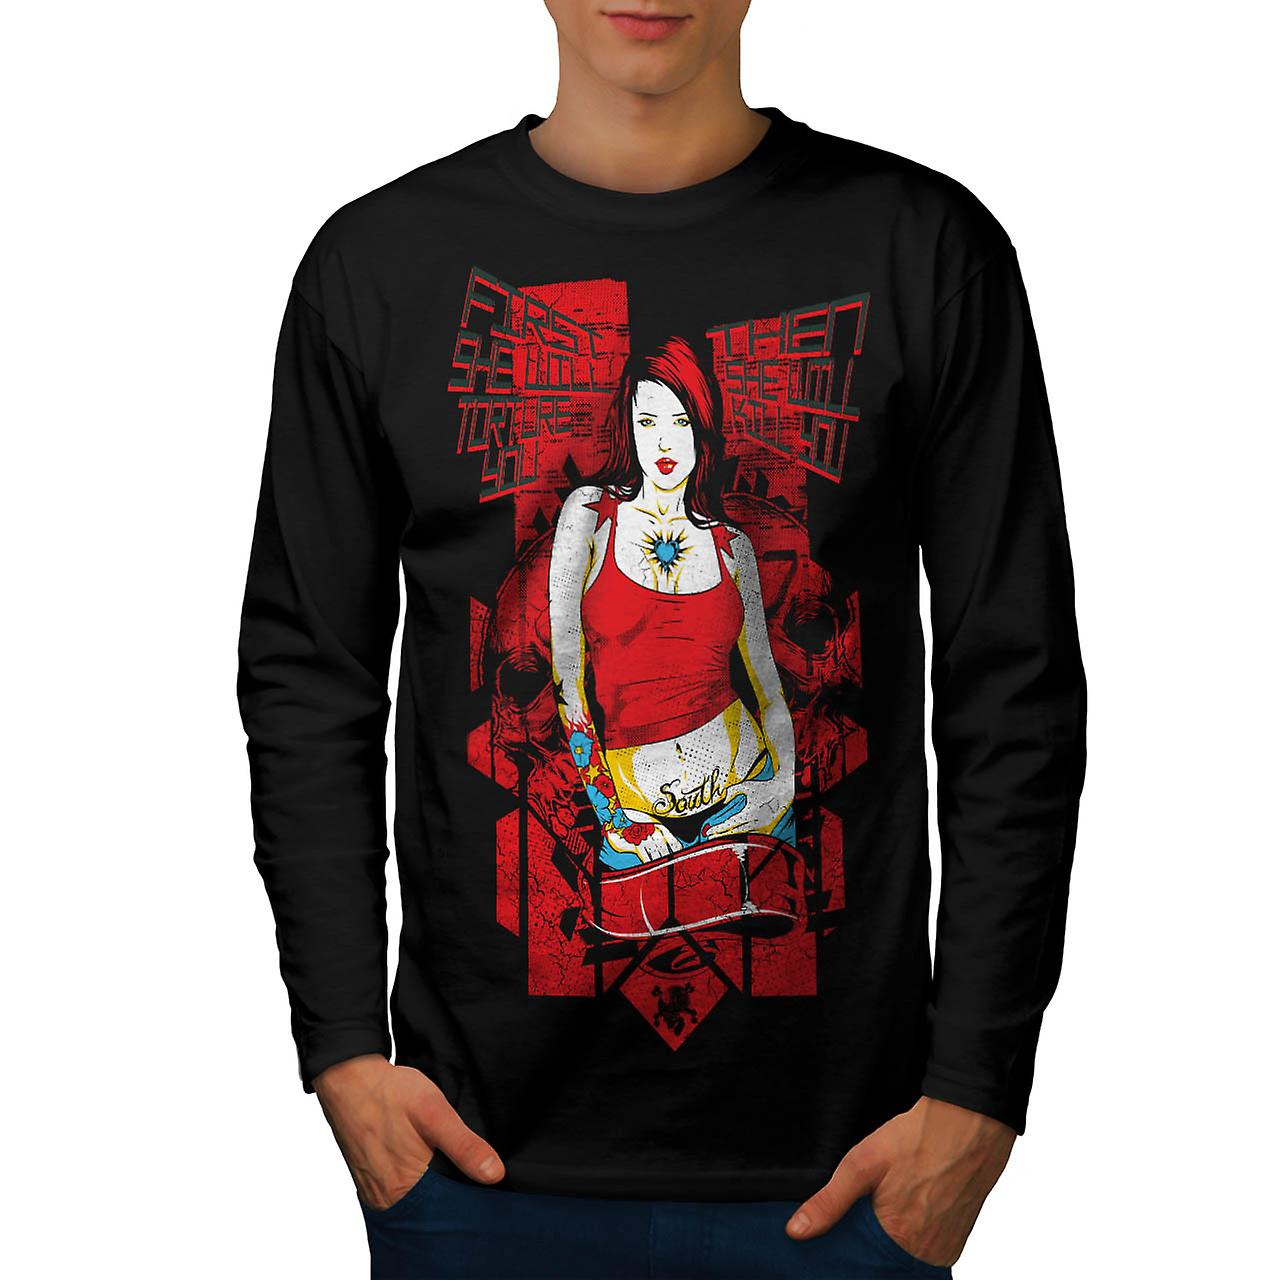 Torture Killer Girl Murder Chick Men Black Long Sleeve T-shirt | Wellcoda